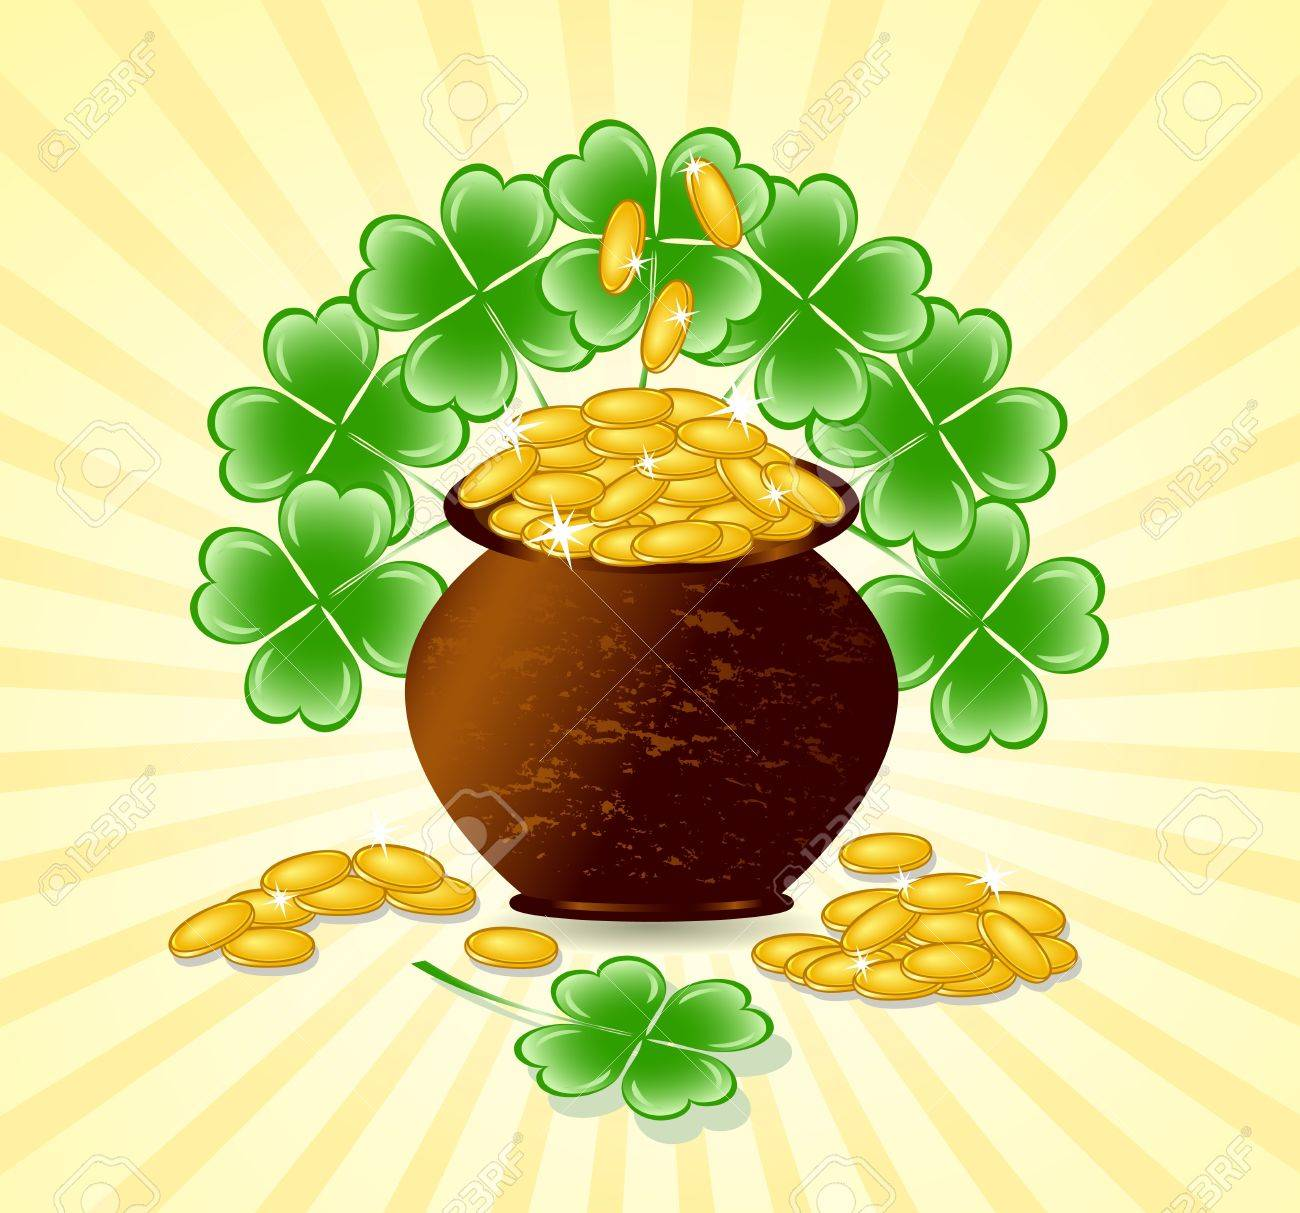 illustration of a  St. Patrick day theme with pot of gold coins, shamrocks on sunny background Stock Vector - 11844835